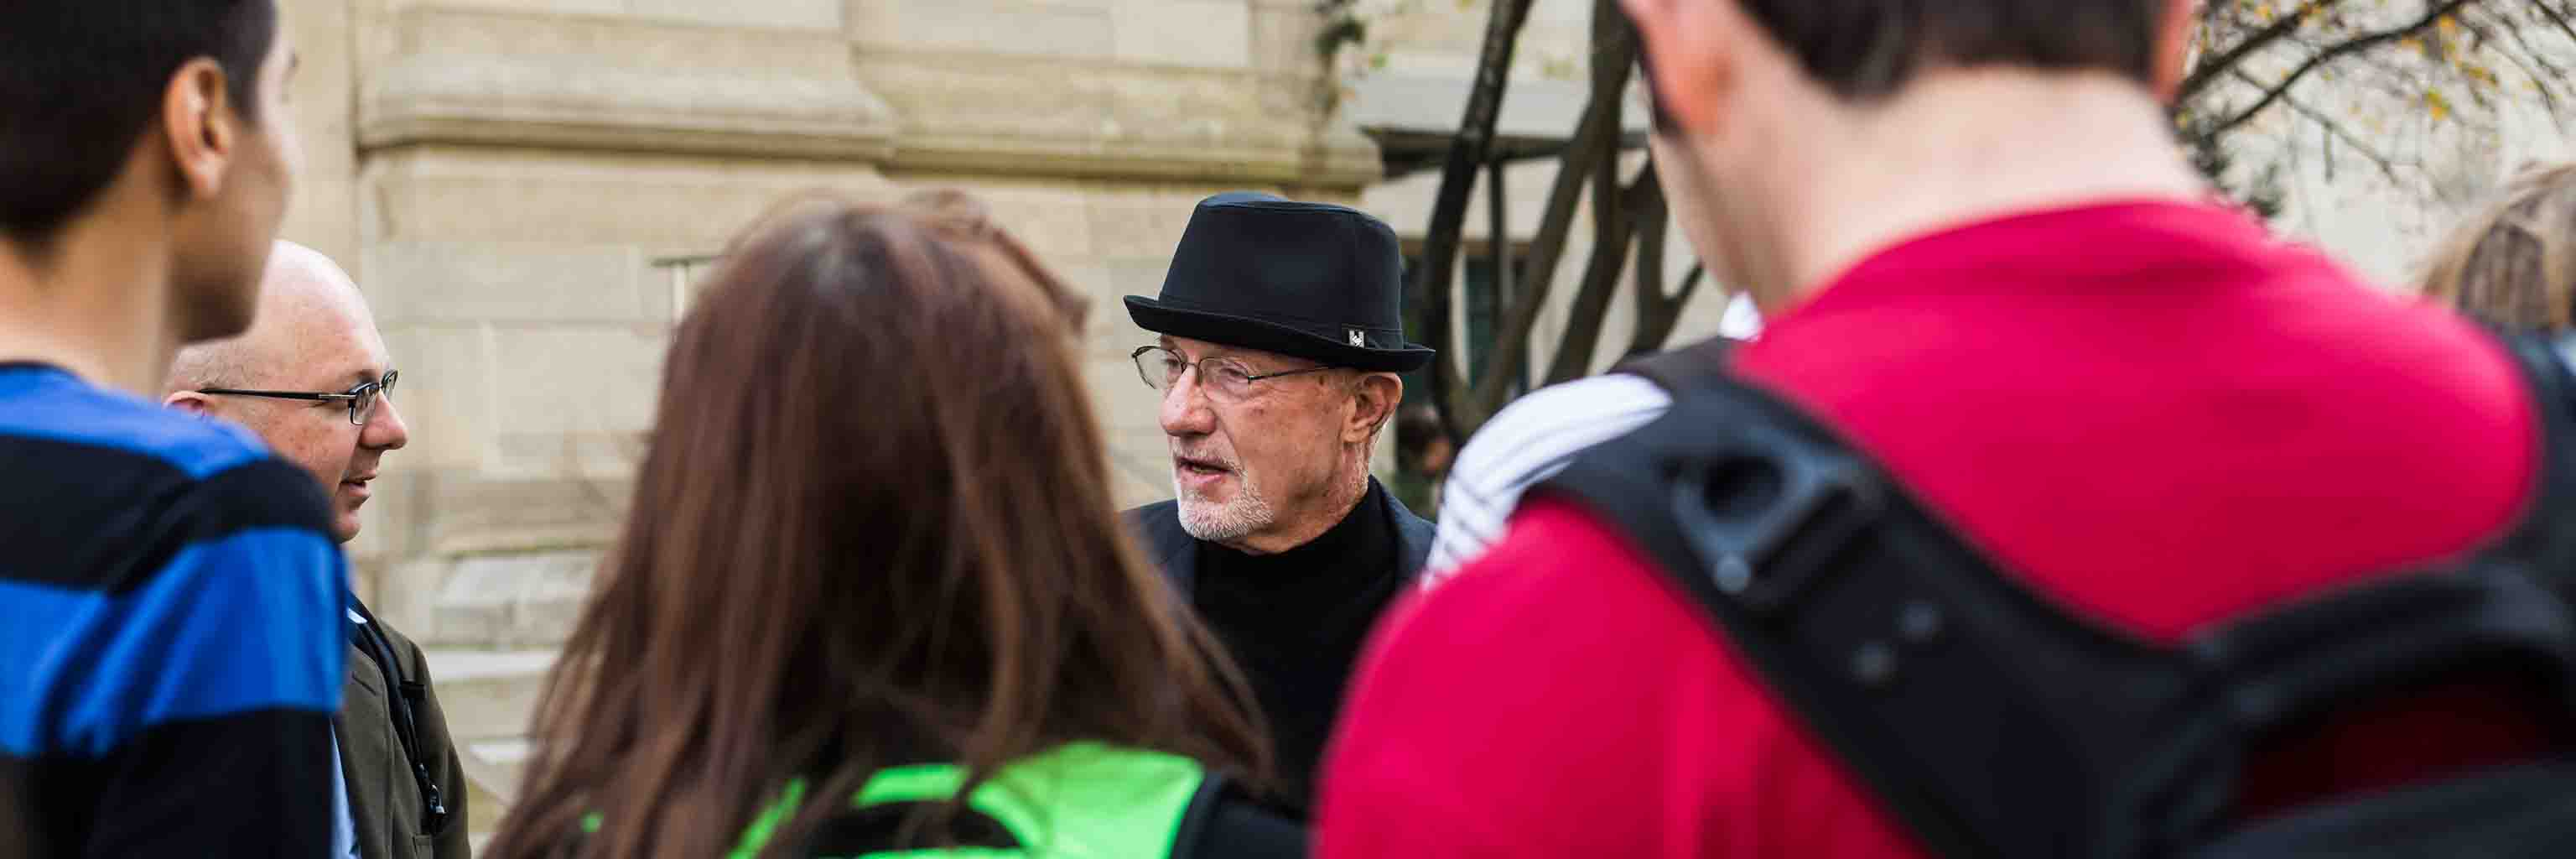 Actor Jonathan Banks speaks to a group in front of Franklin Hall.